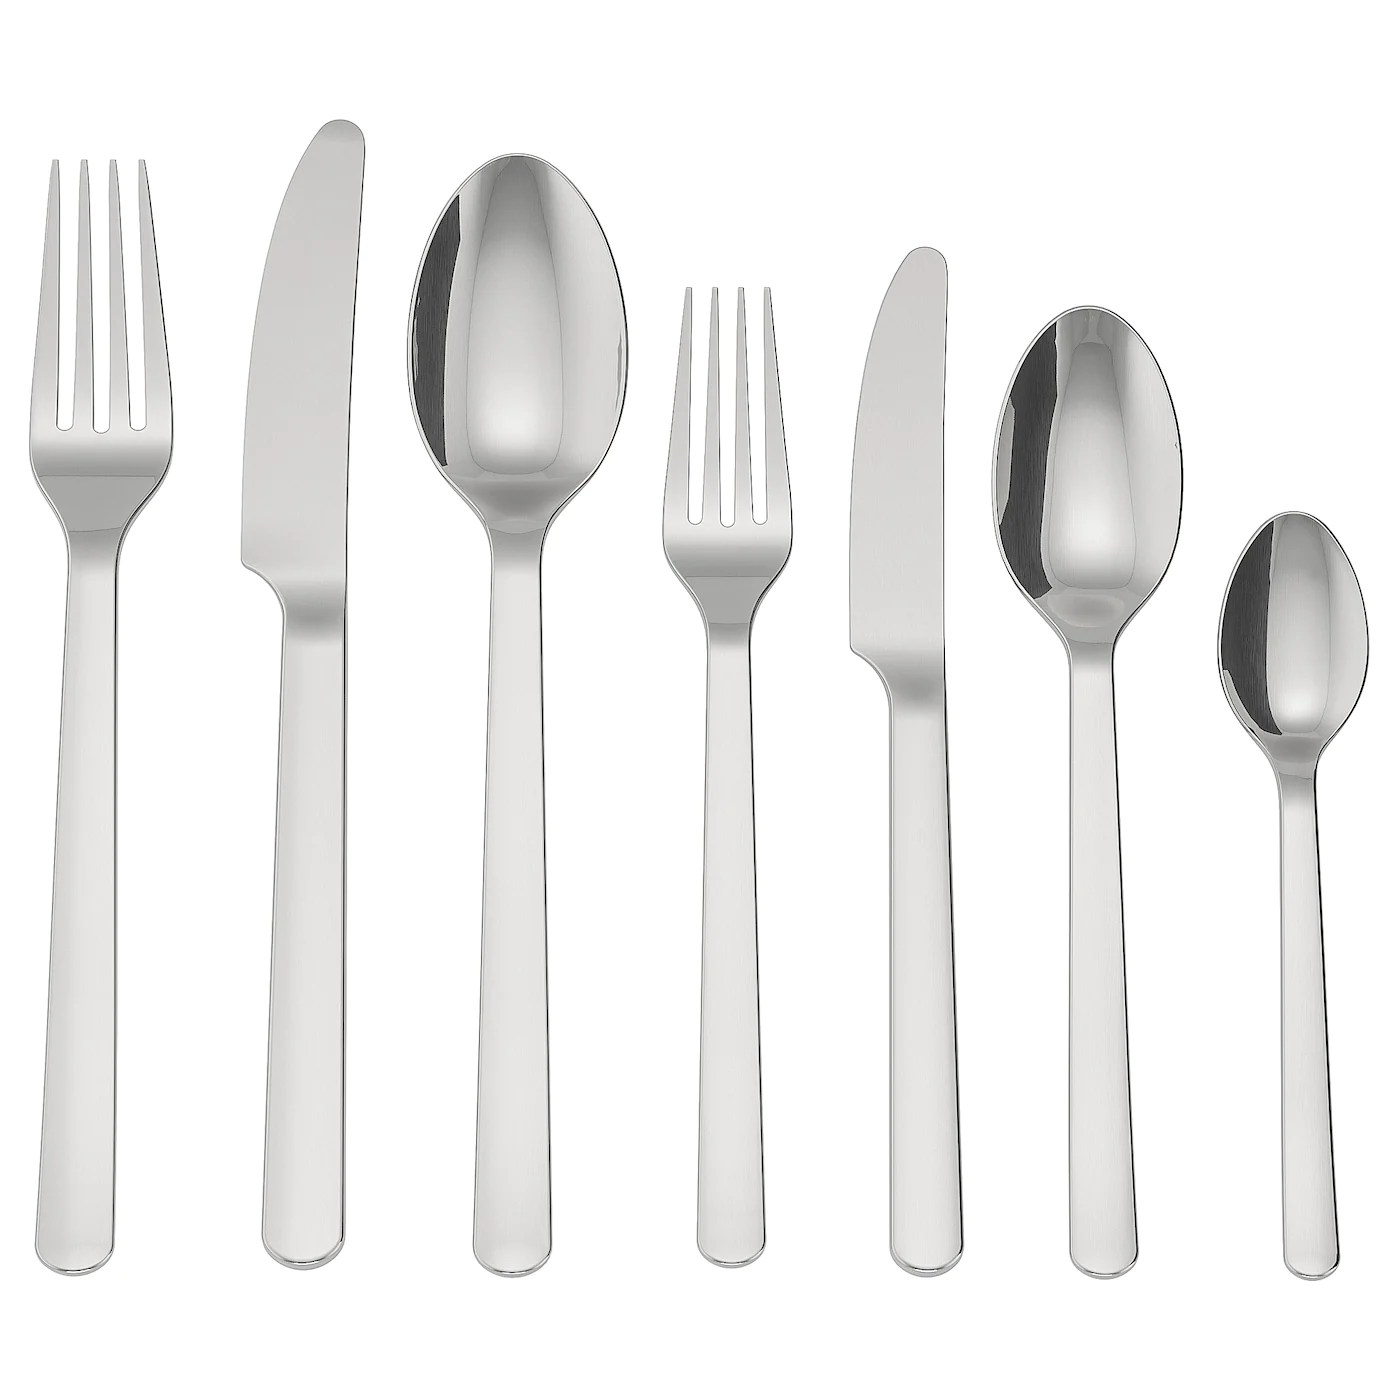 Couvert Plastique Ikea Ikea Cutlery Range Of Cutlery Sets Available At Ikea Ireland